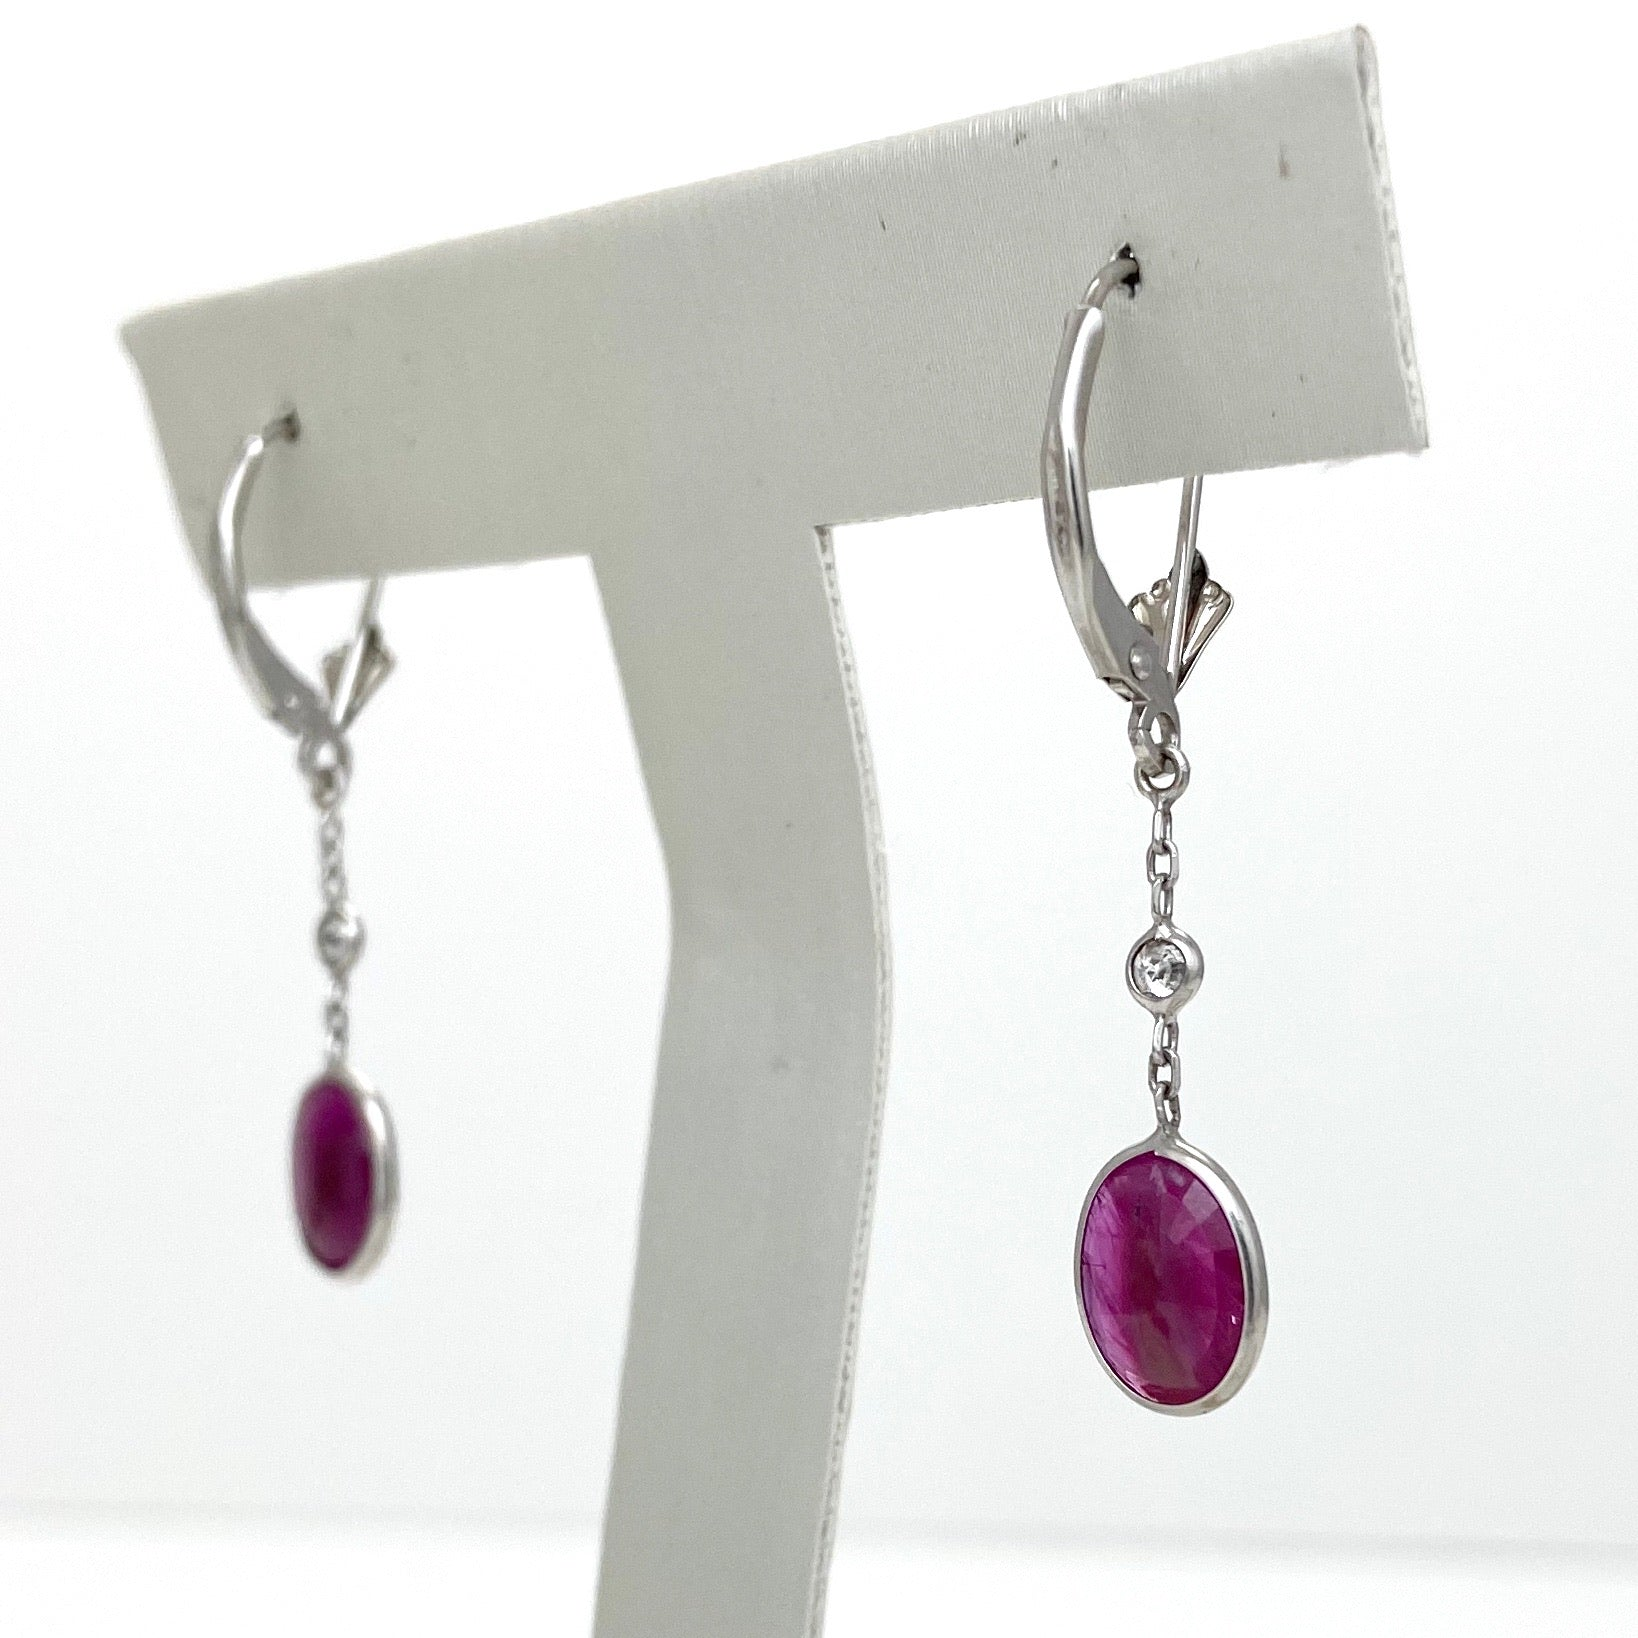 14K White Gold Drop Earrings with Rubies and Diamonds